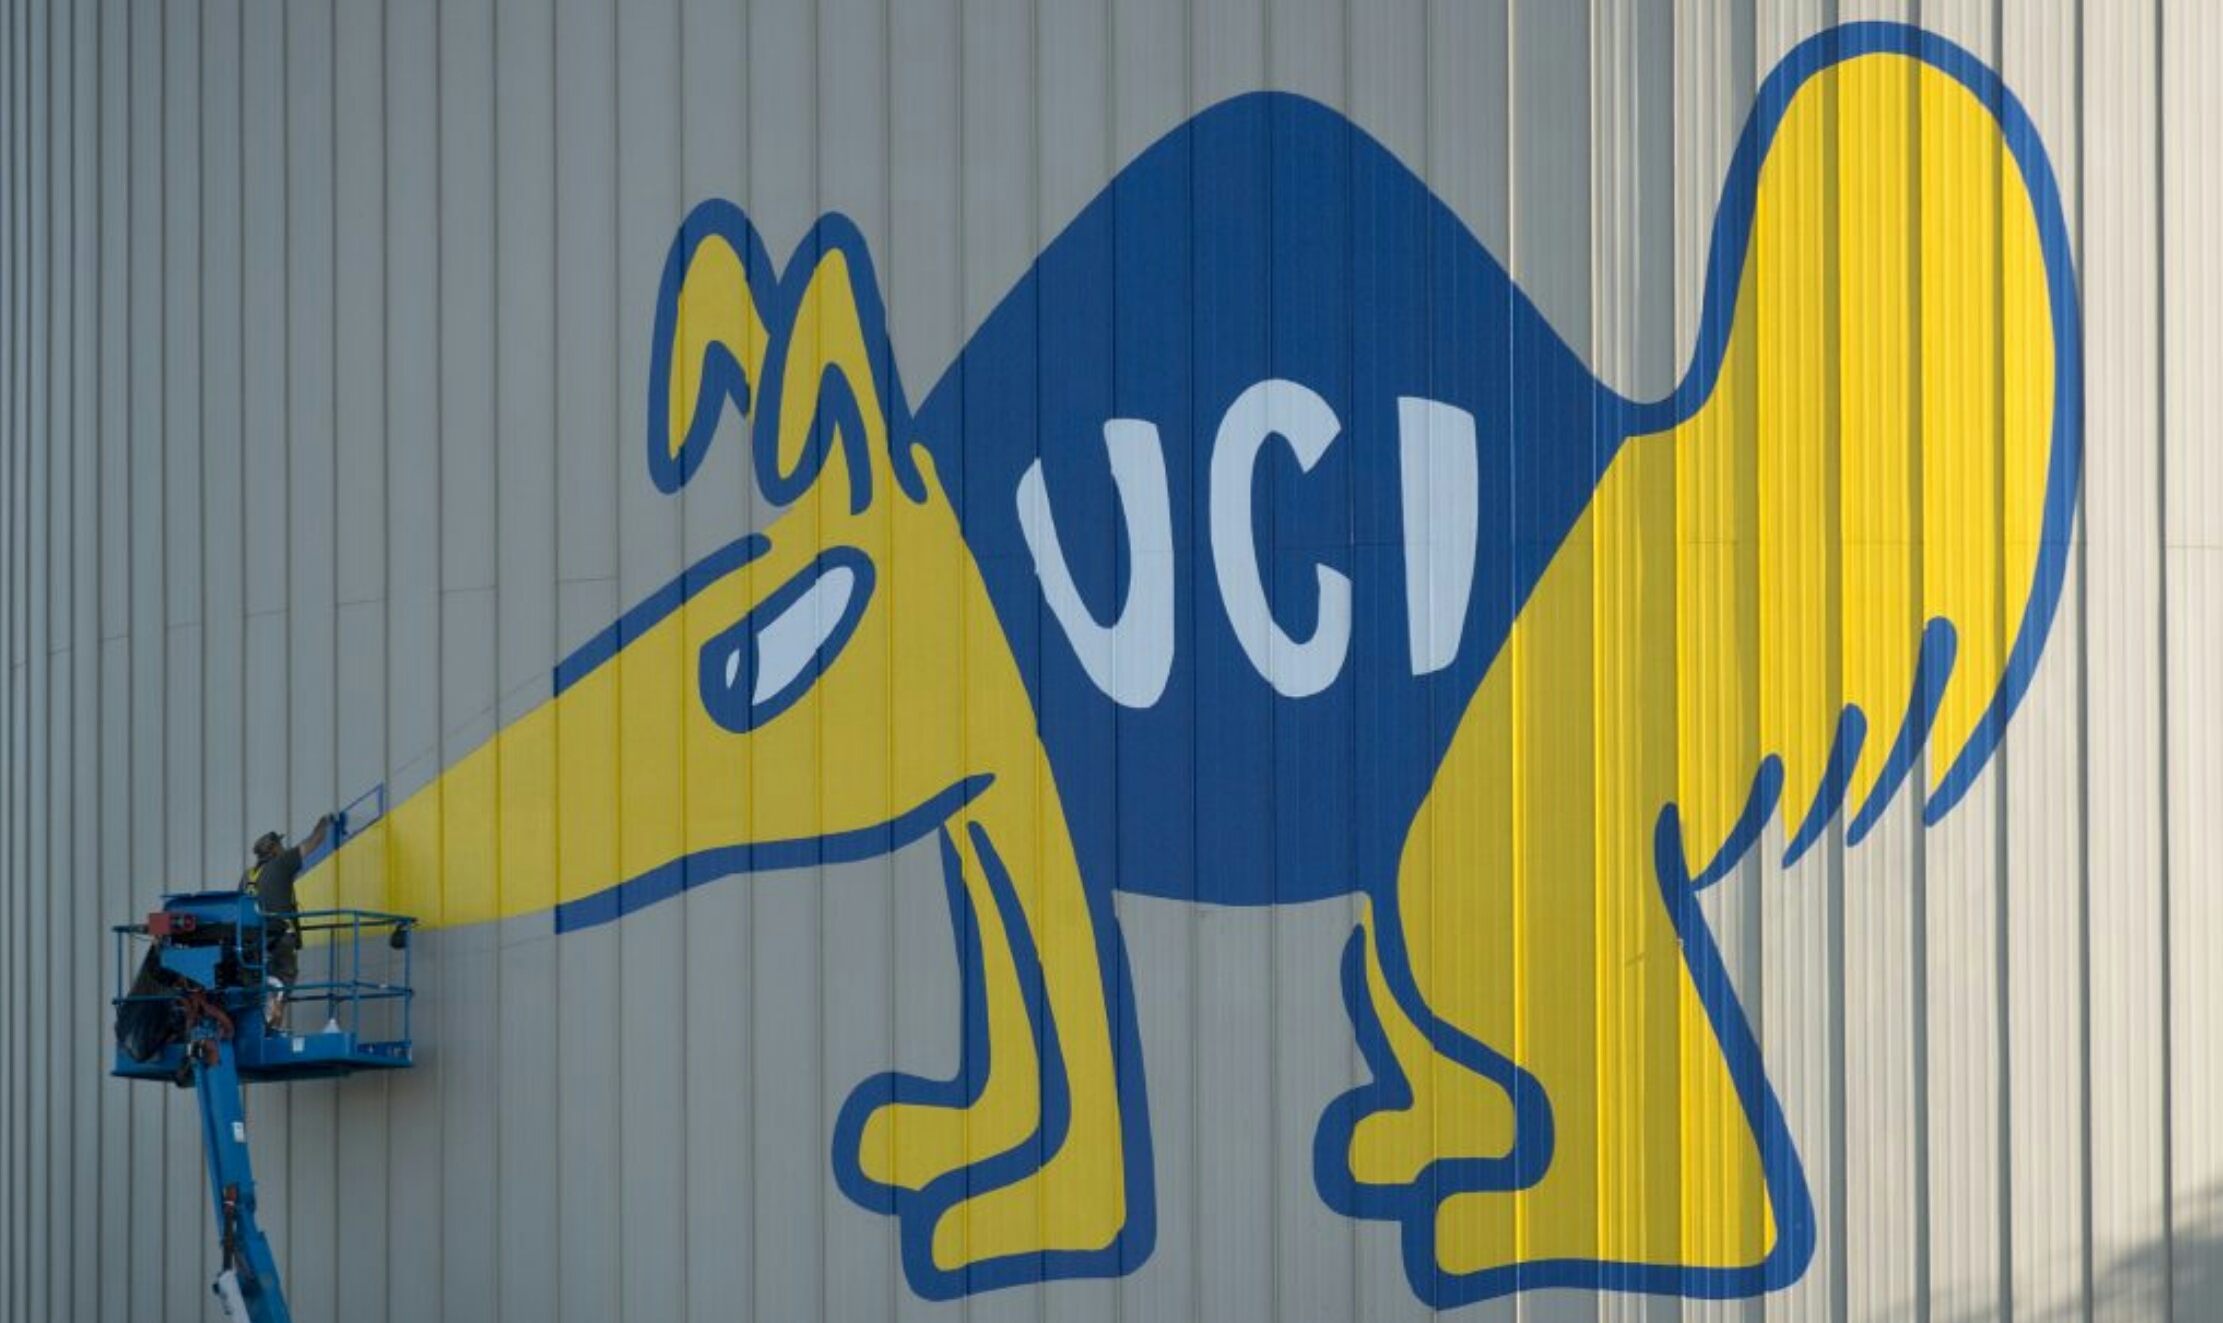 at UC Irvine hand painting the water tower Peter the Anteater graphic